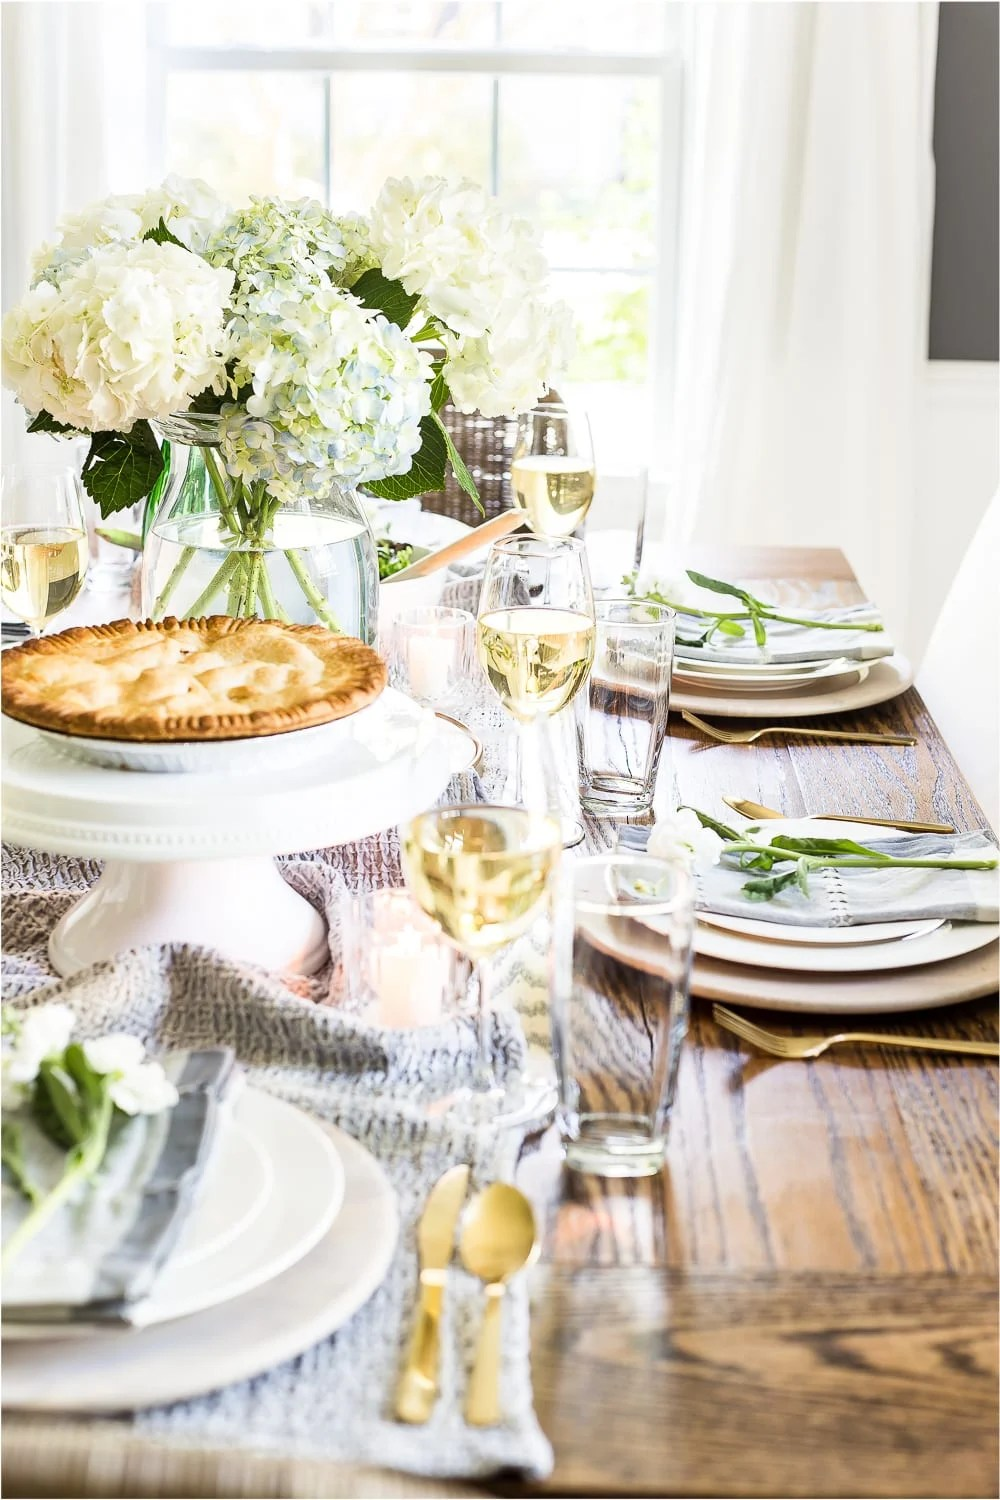 A tour of a 1960 colonial house decorated for summer with the 2018 Summer Tour of Homes using classic, timeless style and neutral decor. #summertour #hometour #summerhometour #summerdecor #tablescape #summertablescape #mothersdaytable